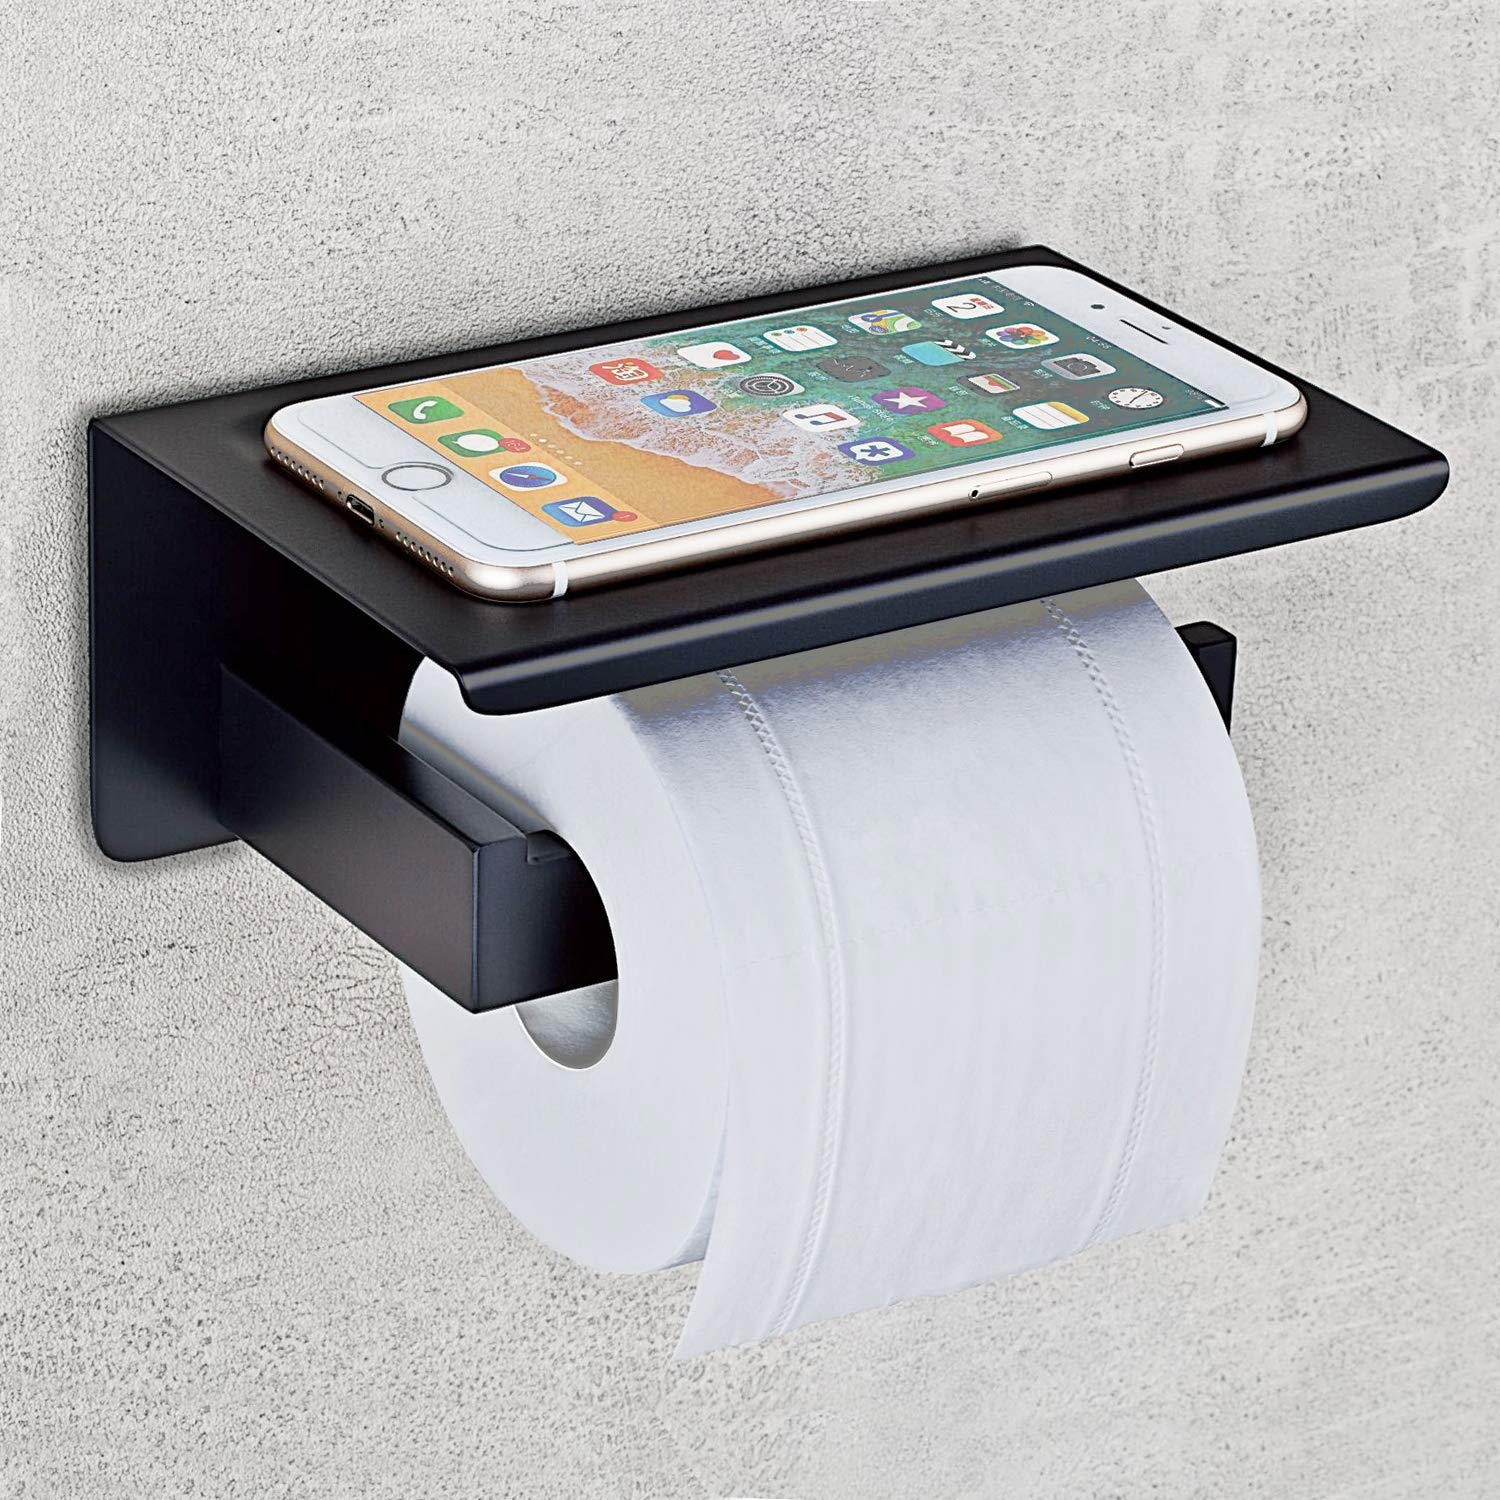 Nolimas Matte Black Toilet Paper Holder with Shelf, SUS304 Stainless Steel Bathroom Square, Modern Anti Rust Wall Mounted Tissue TP Roll Dispenser Plus Cell Mobile Phone Storage Rack